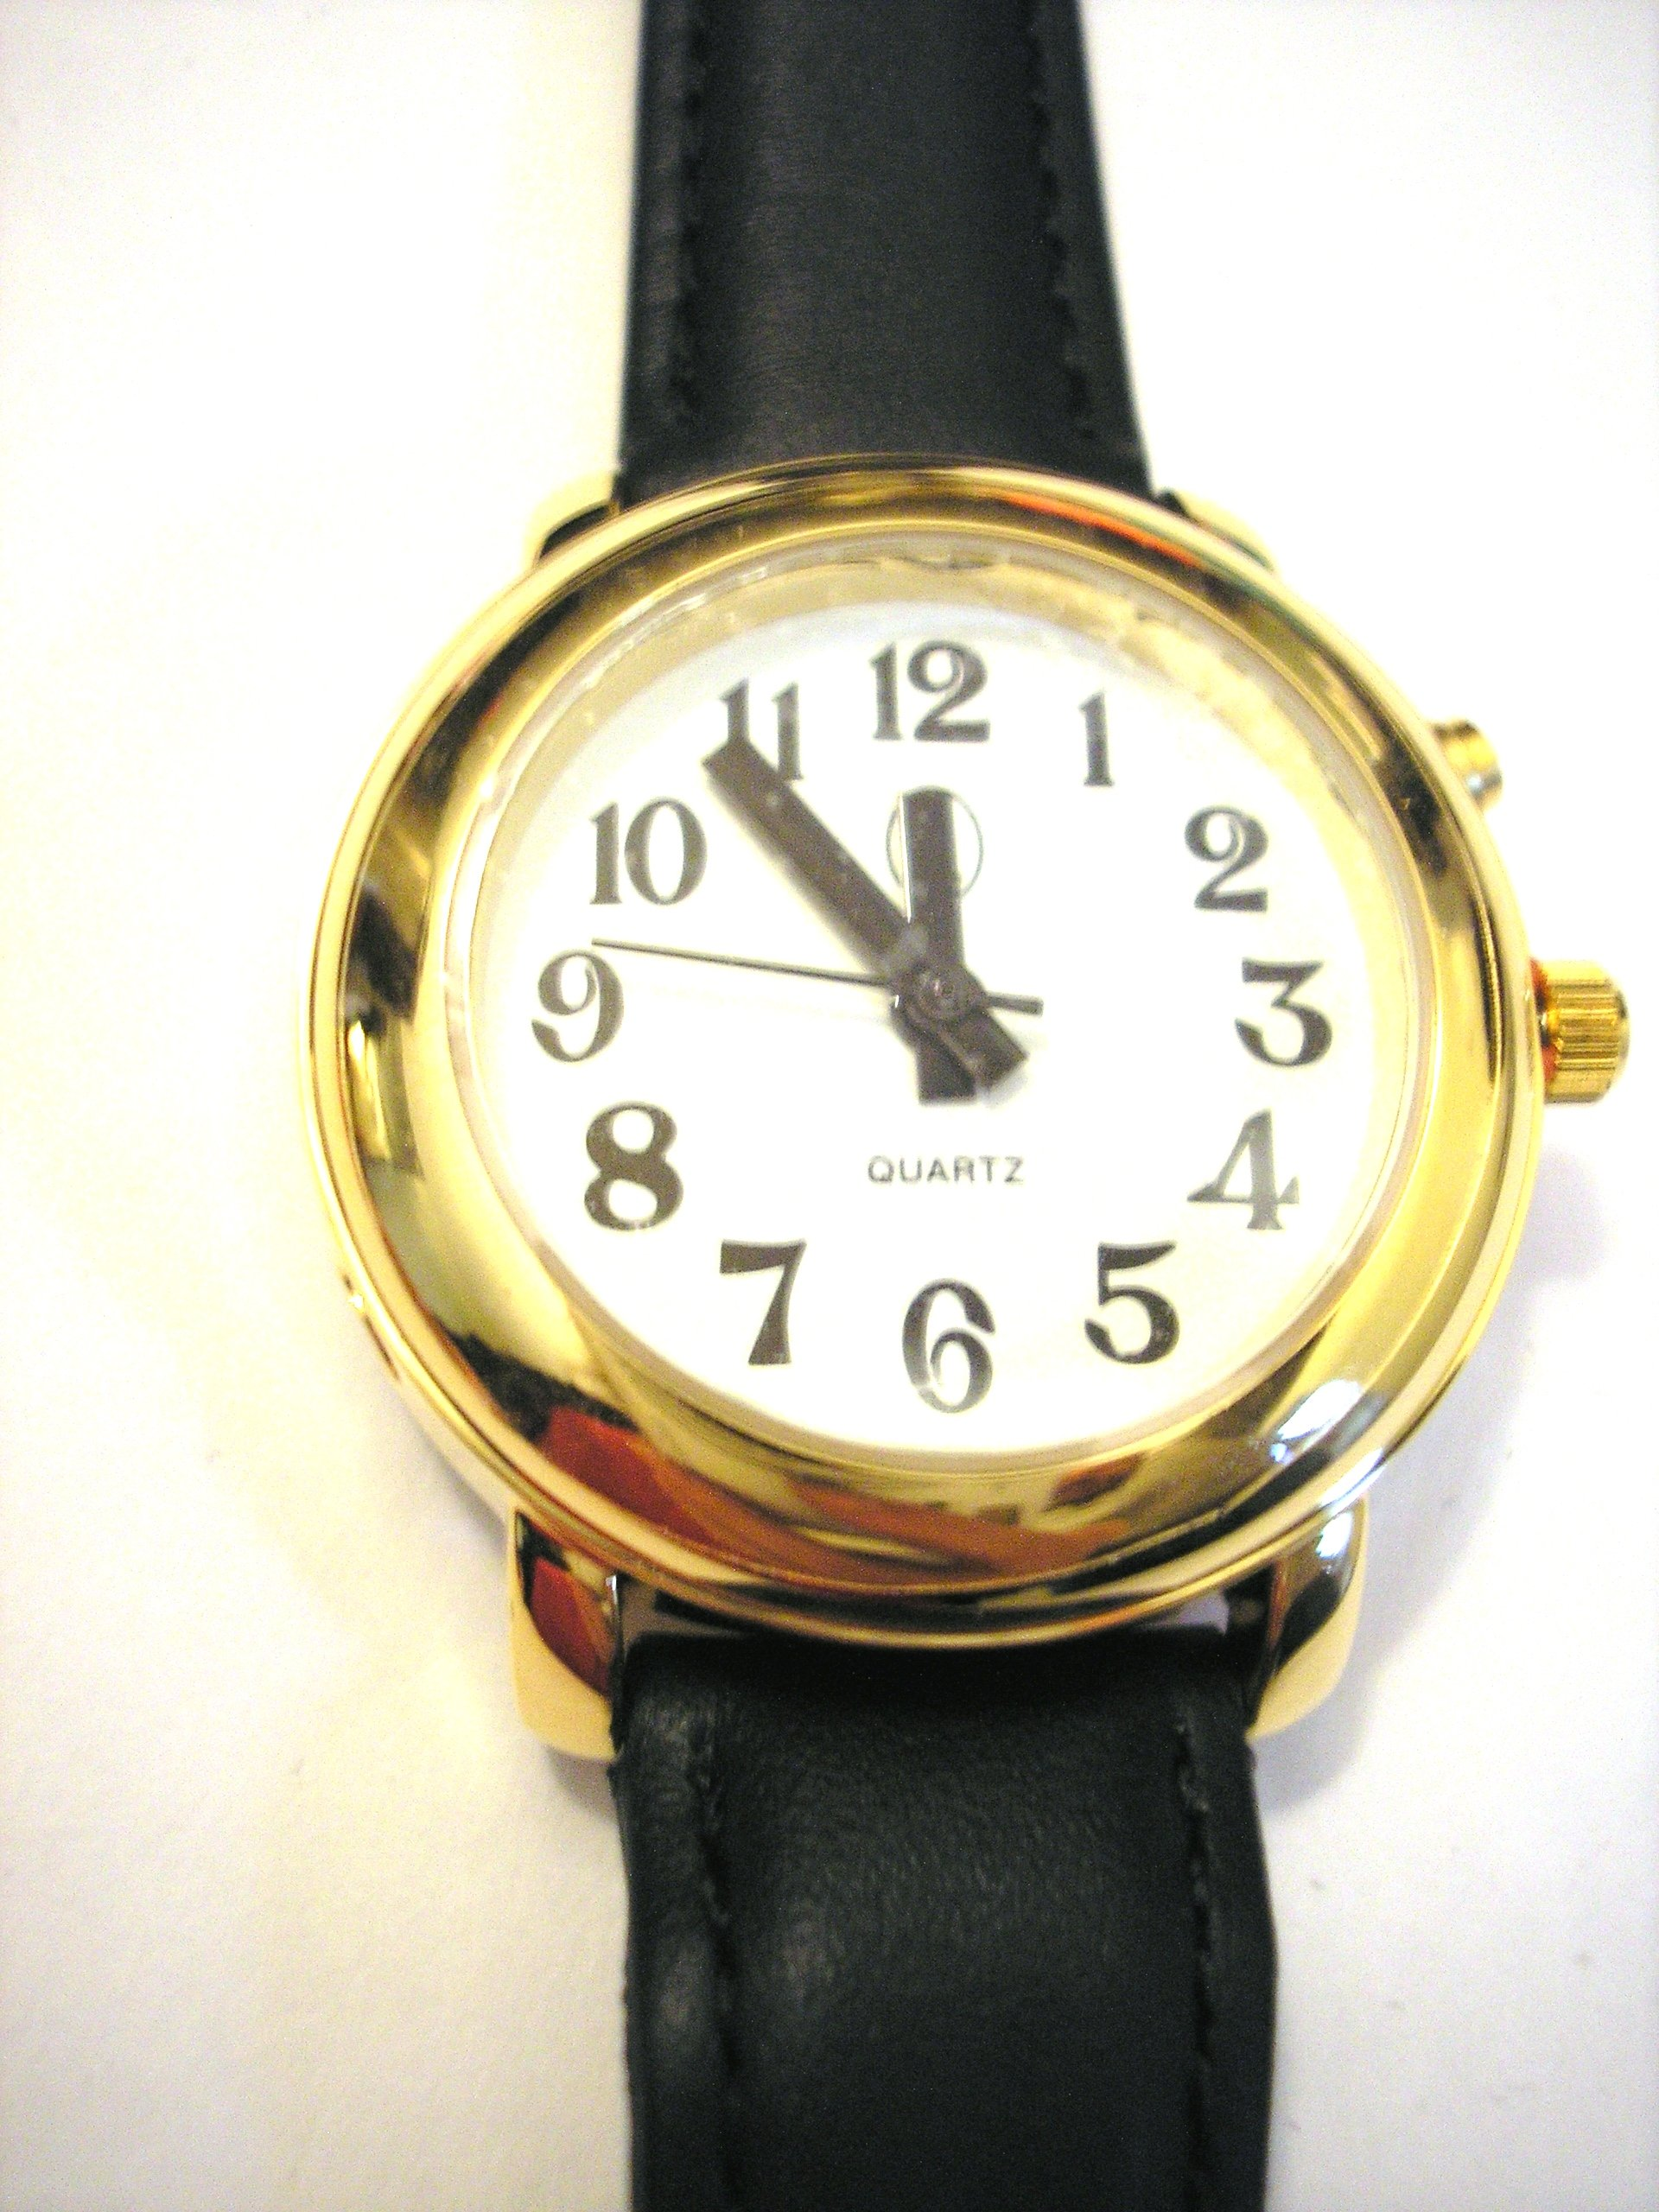 Ladies Deluxe Talking Wrist Watch Gold Tone w/Black Leather Band by APP